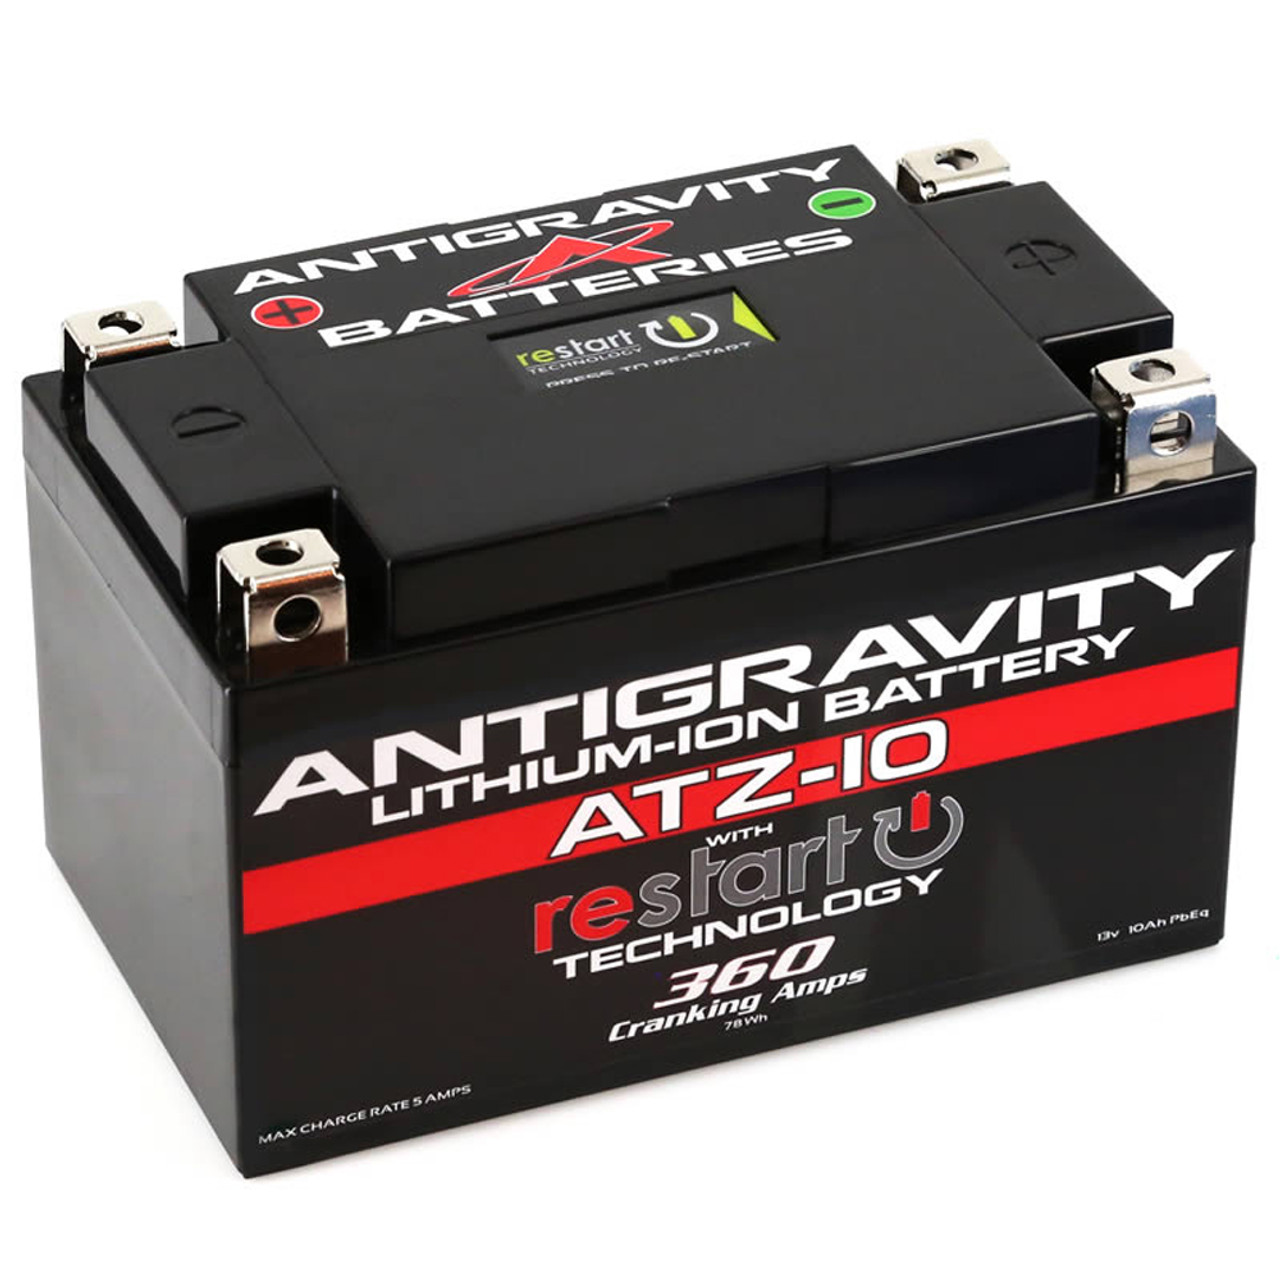 Antigravity Atz10 Kawasaki Ninja 650r 12 16 Lithium Ion Battery